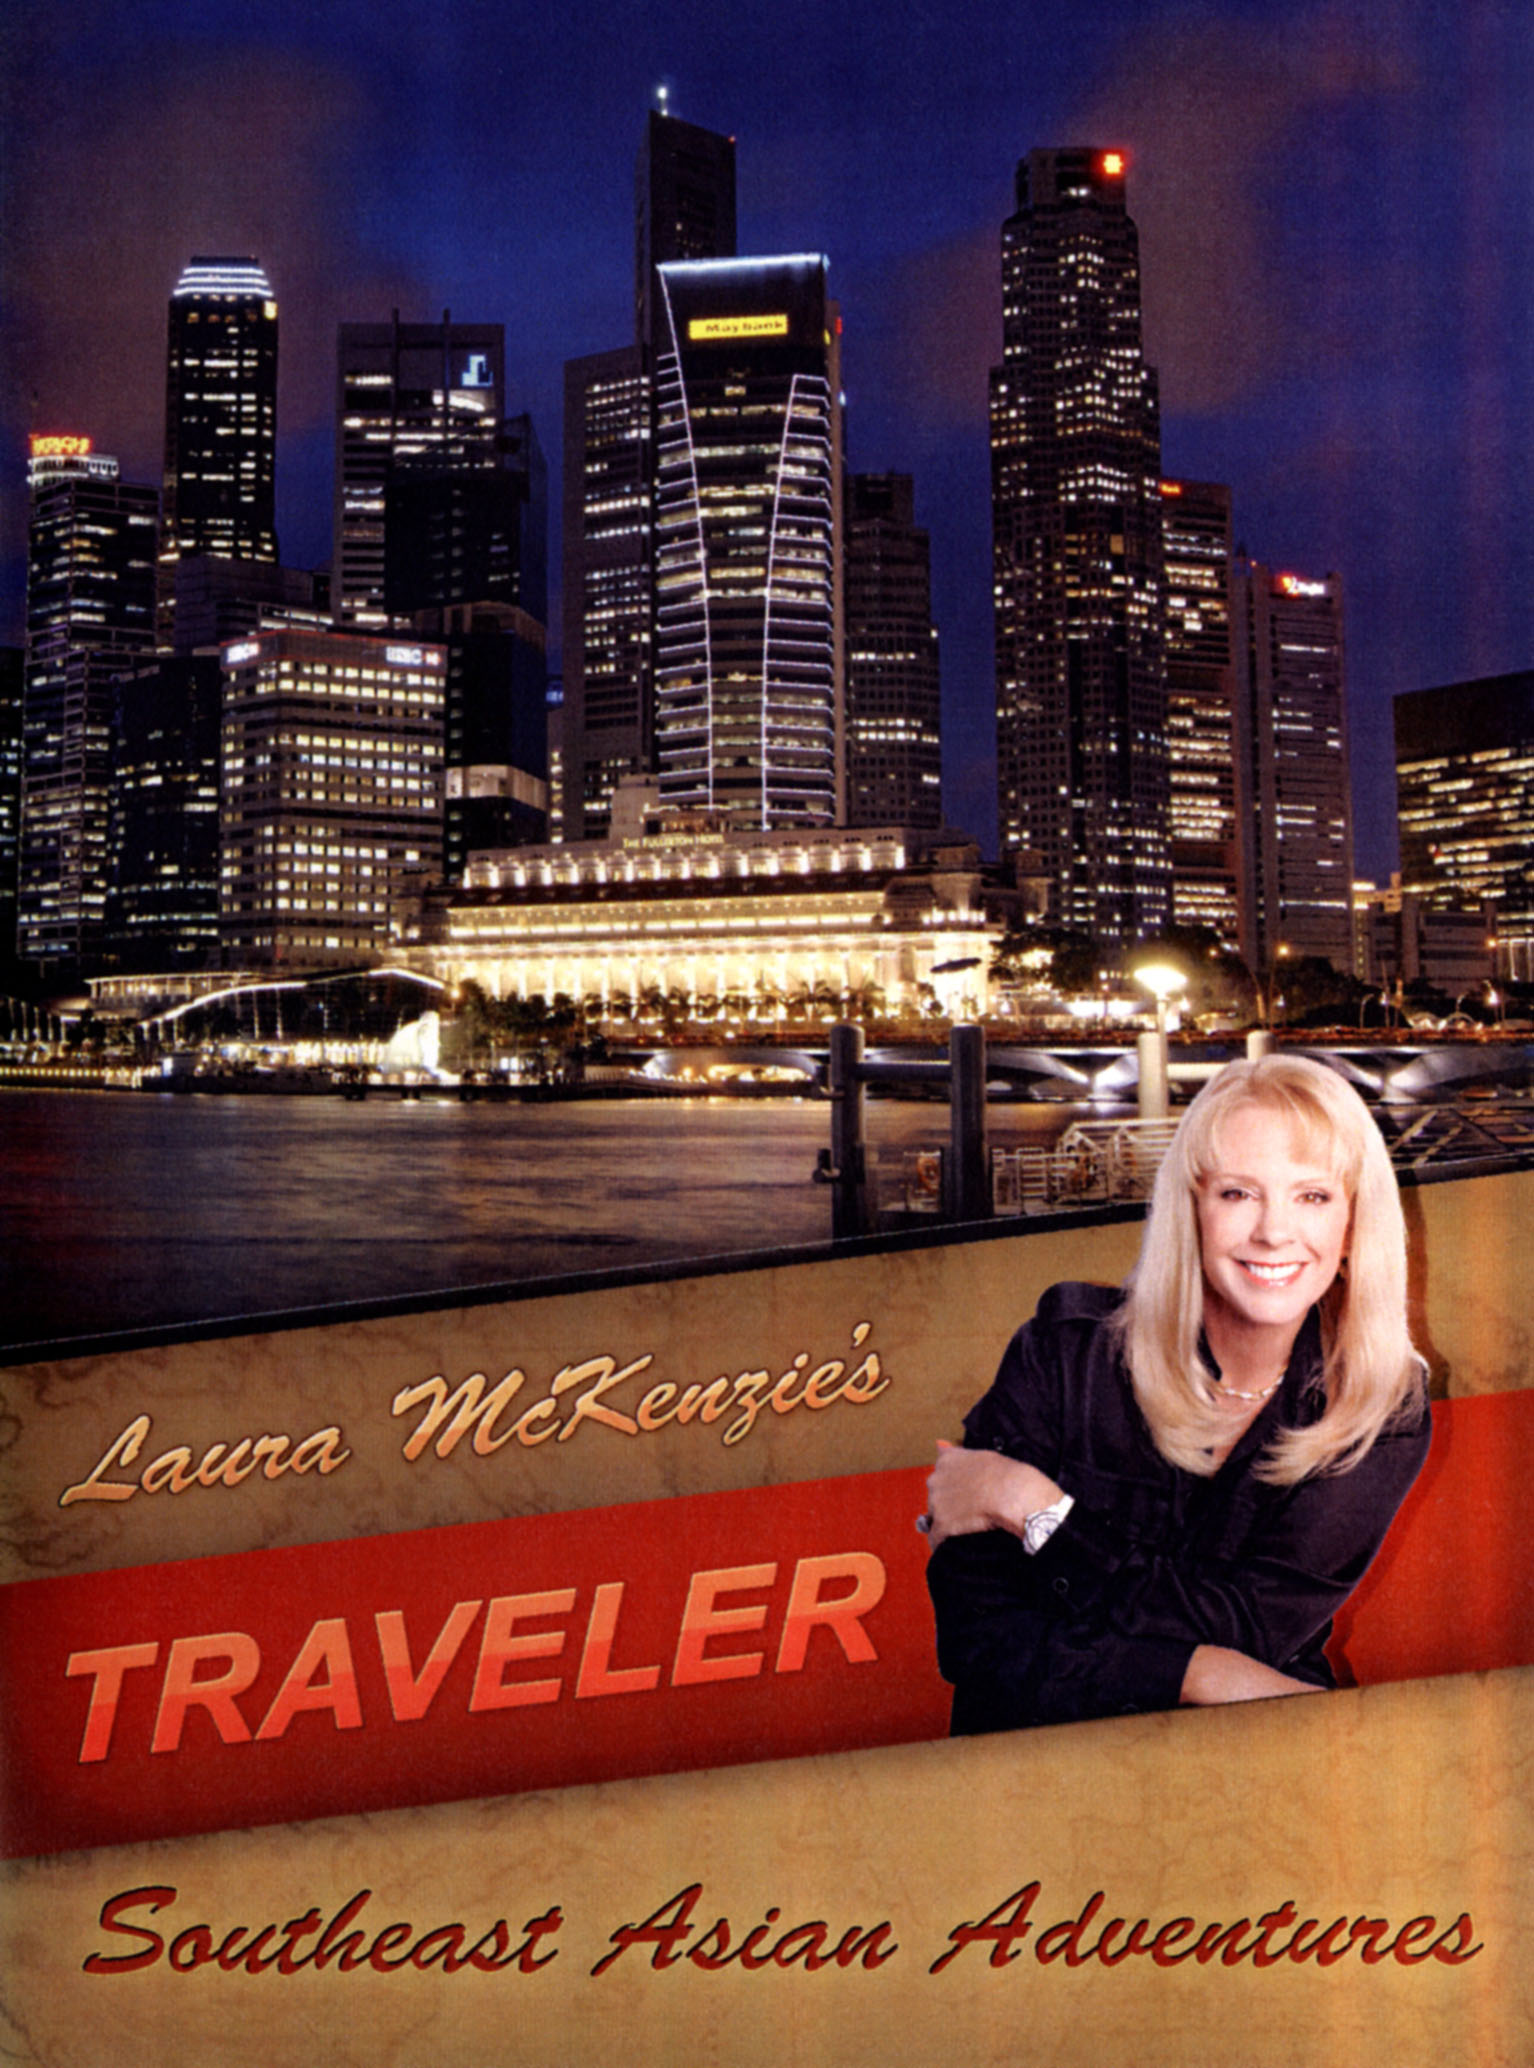 Laura McKenzie's Traveler: Southeast Asian Adventures